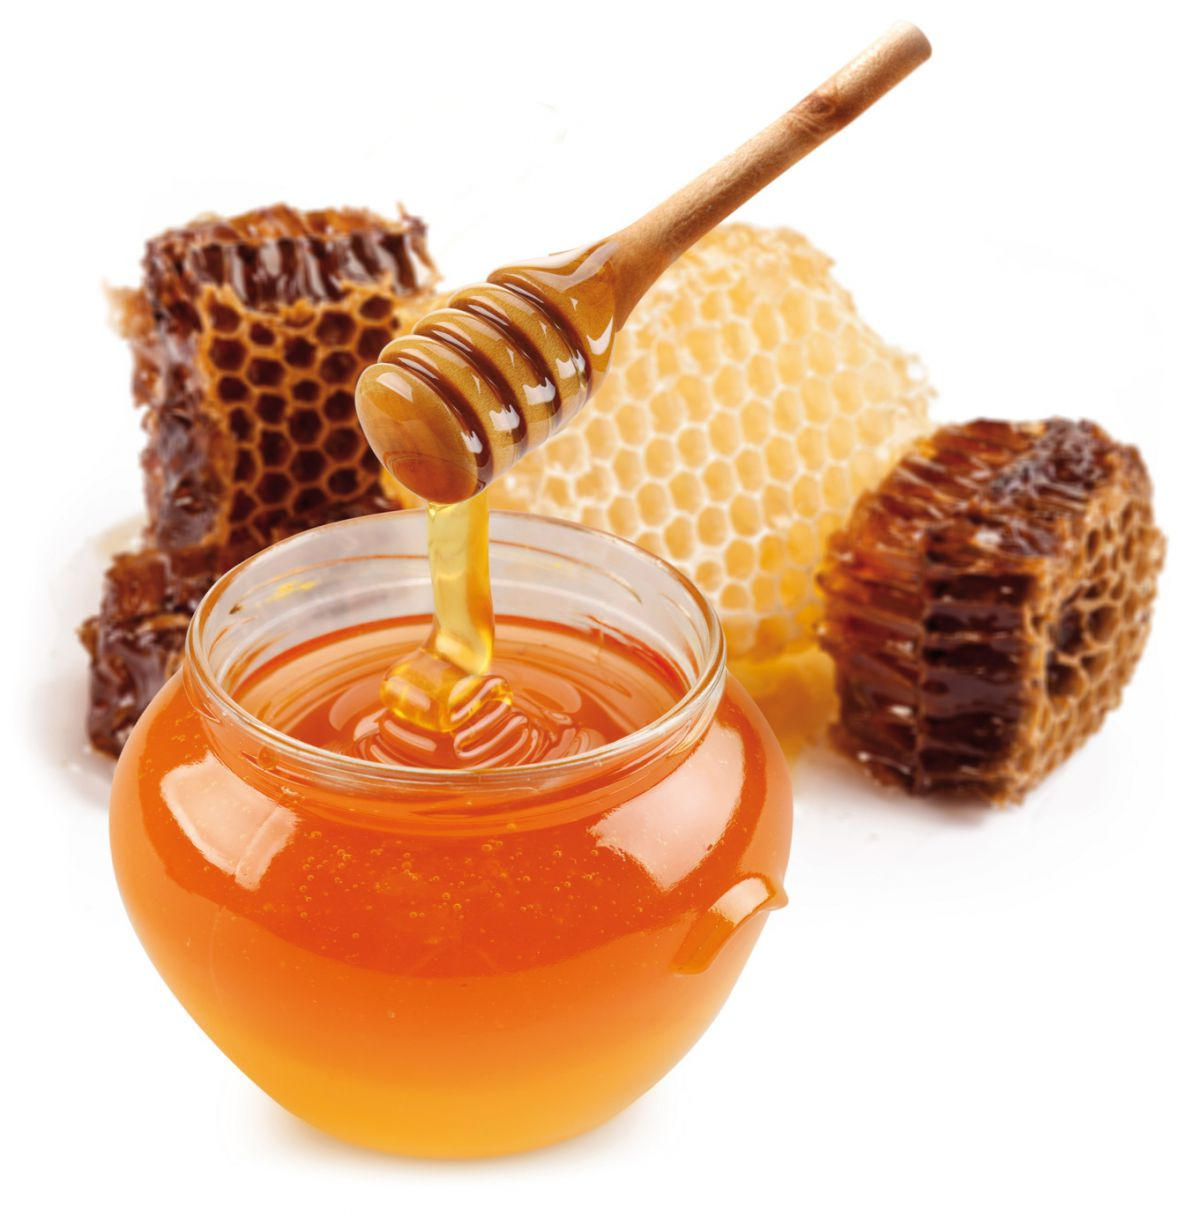 Honey-dream Offer - Recomandation for the weekend